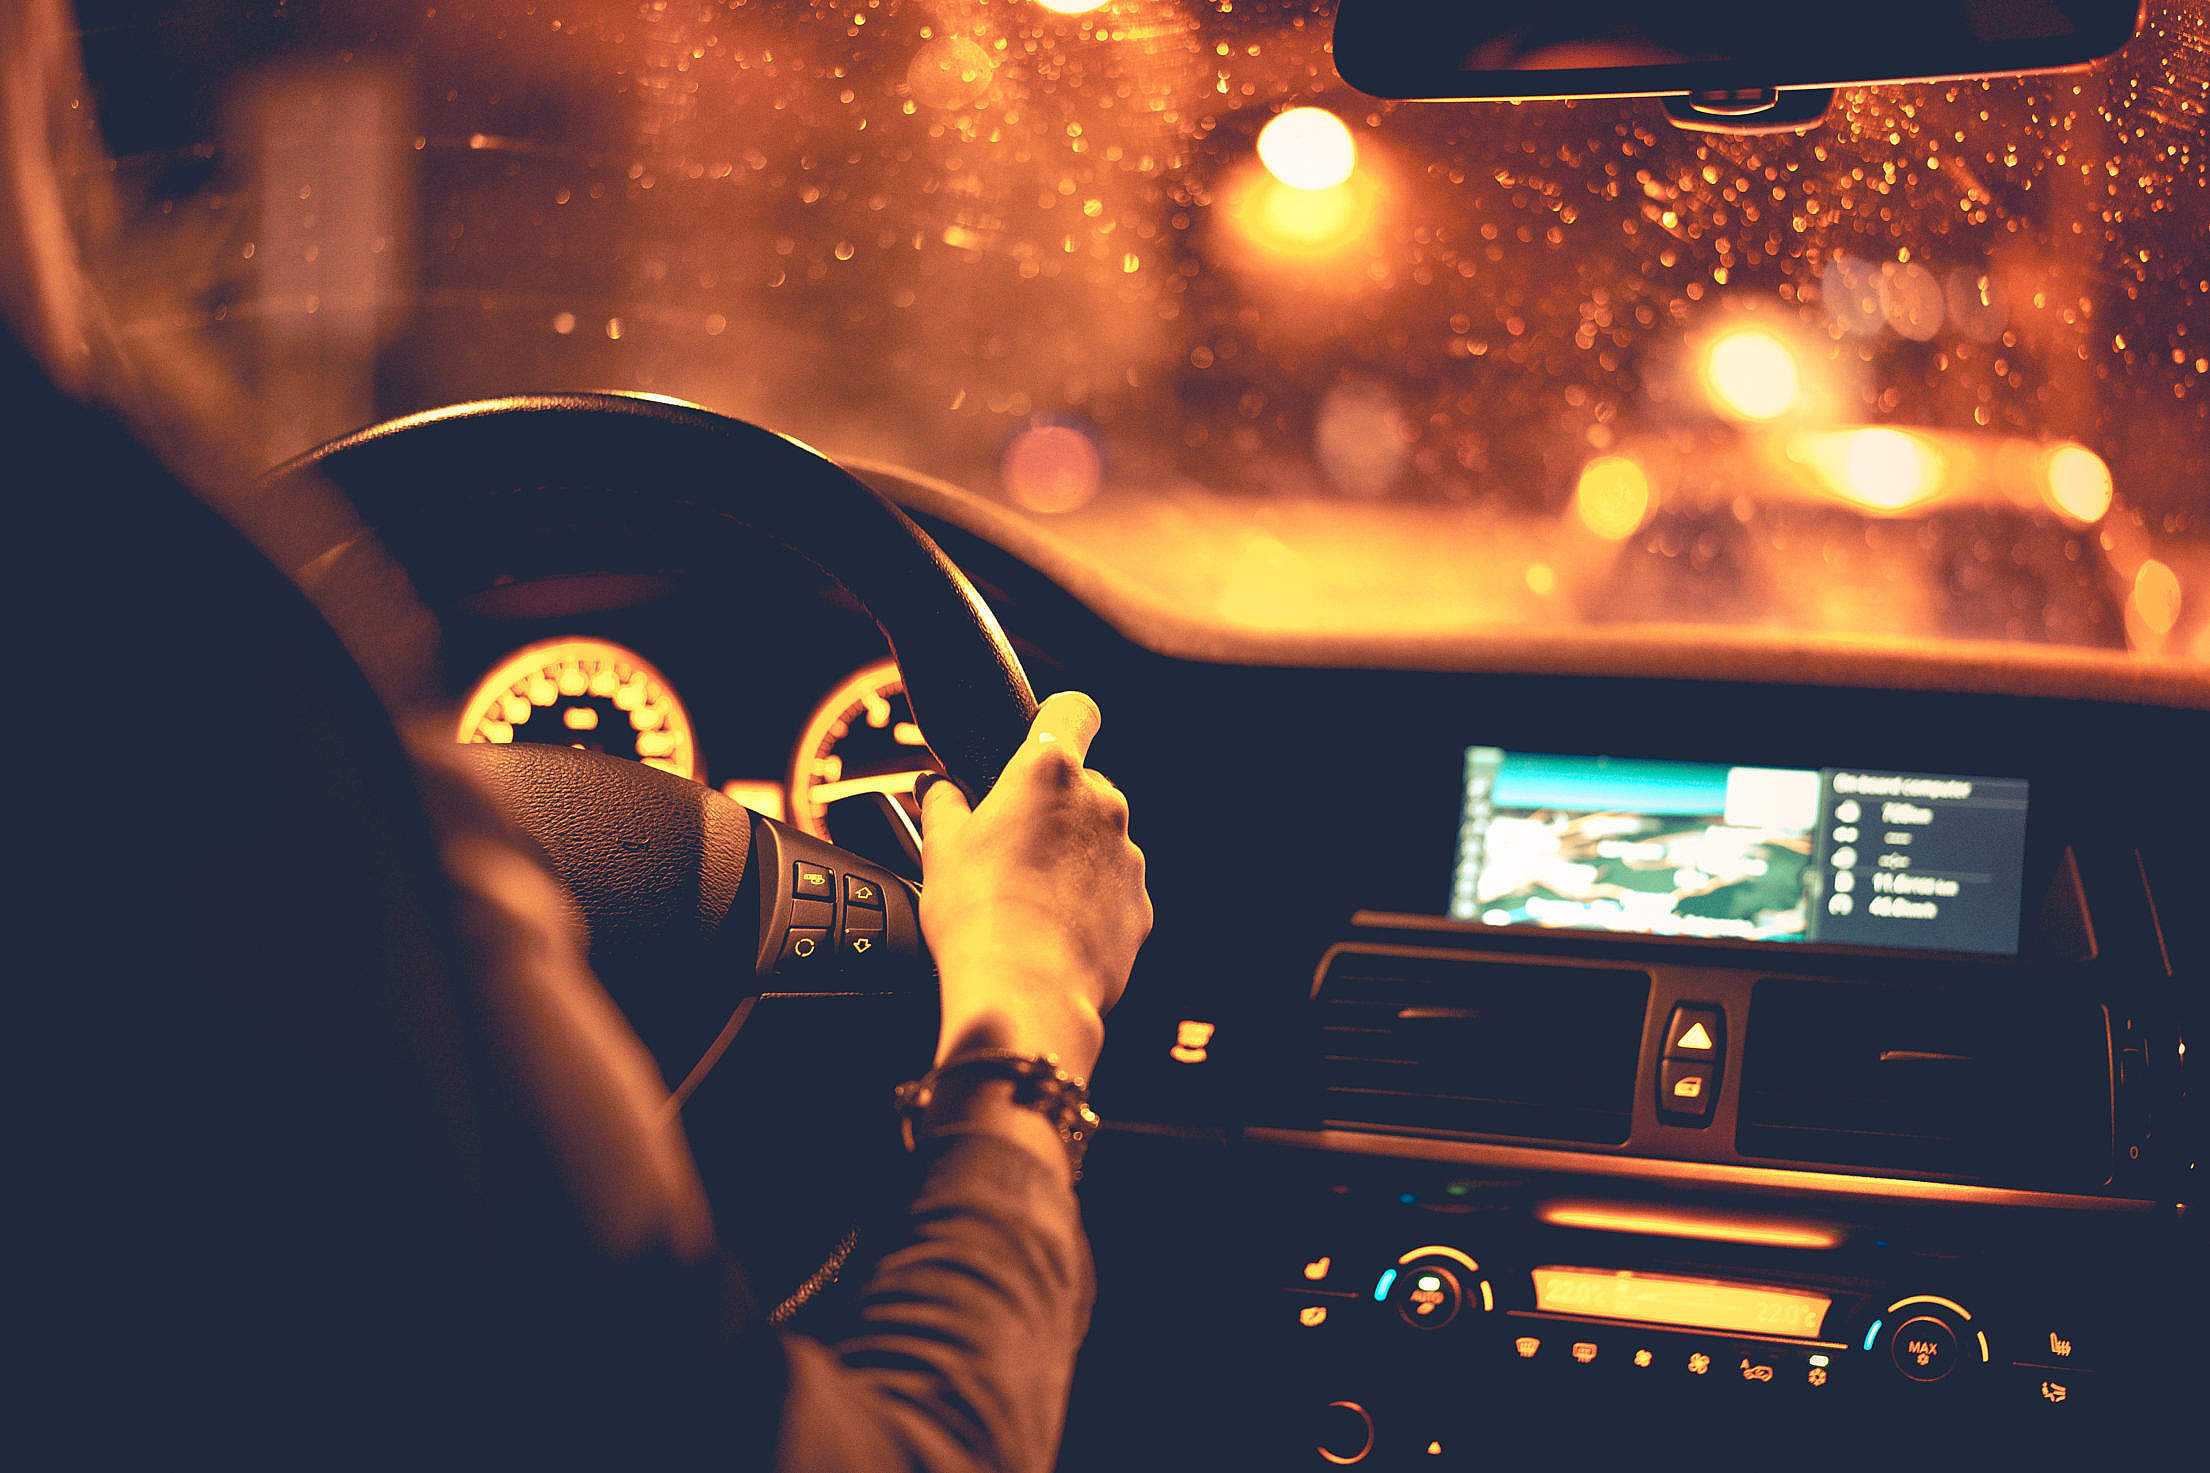 Woman Driving at Night Free Stock Photo